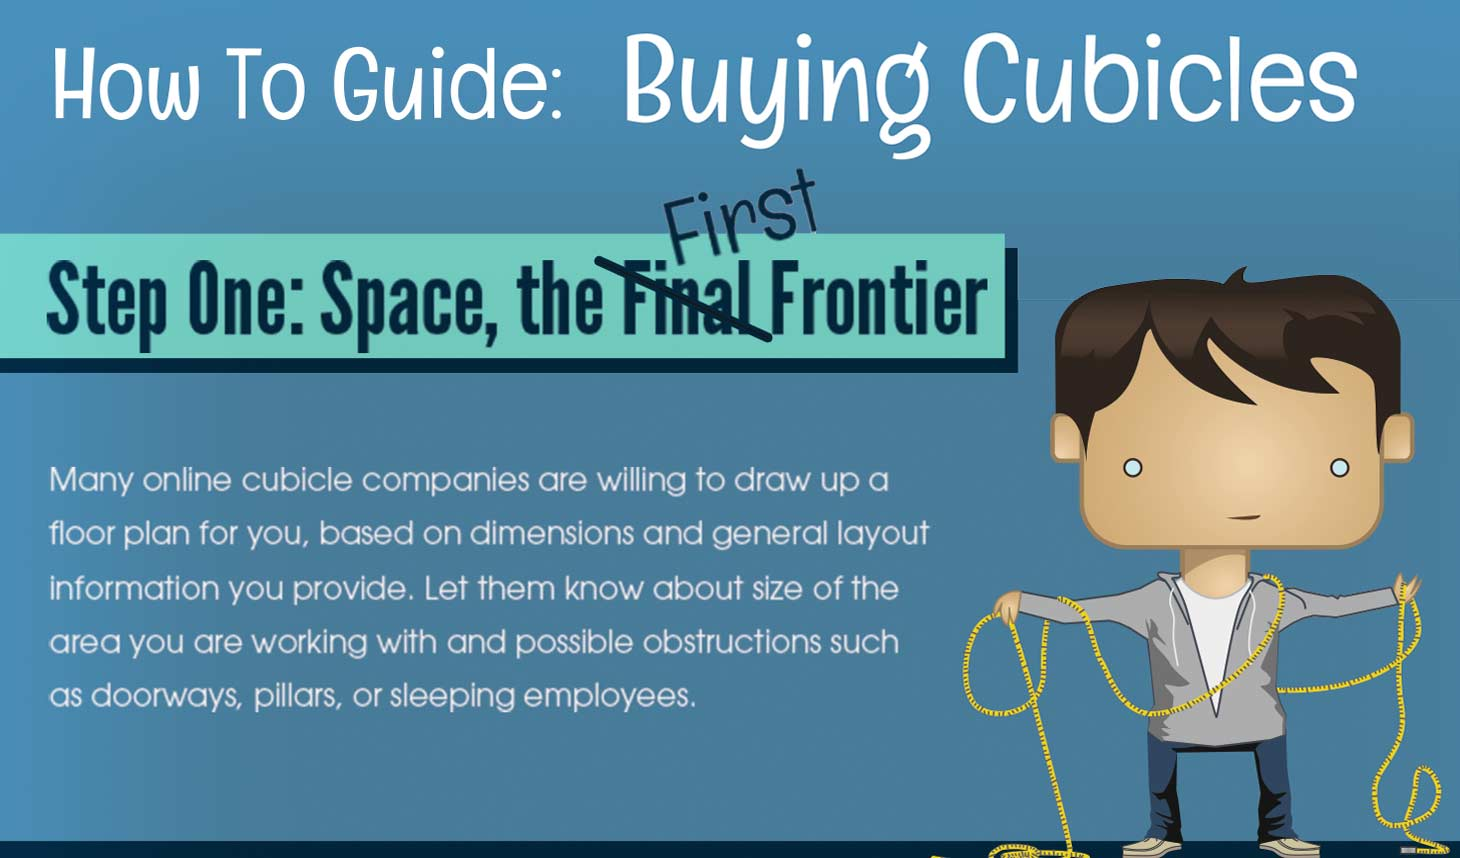 Cubicle Buyers Guide Infographic